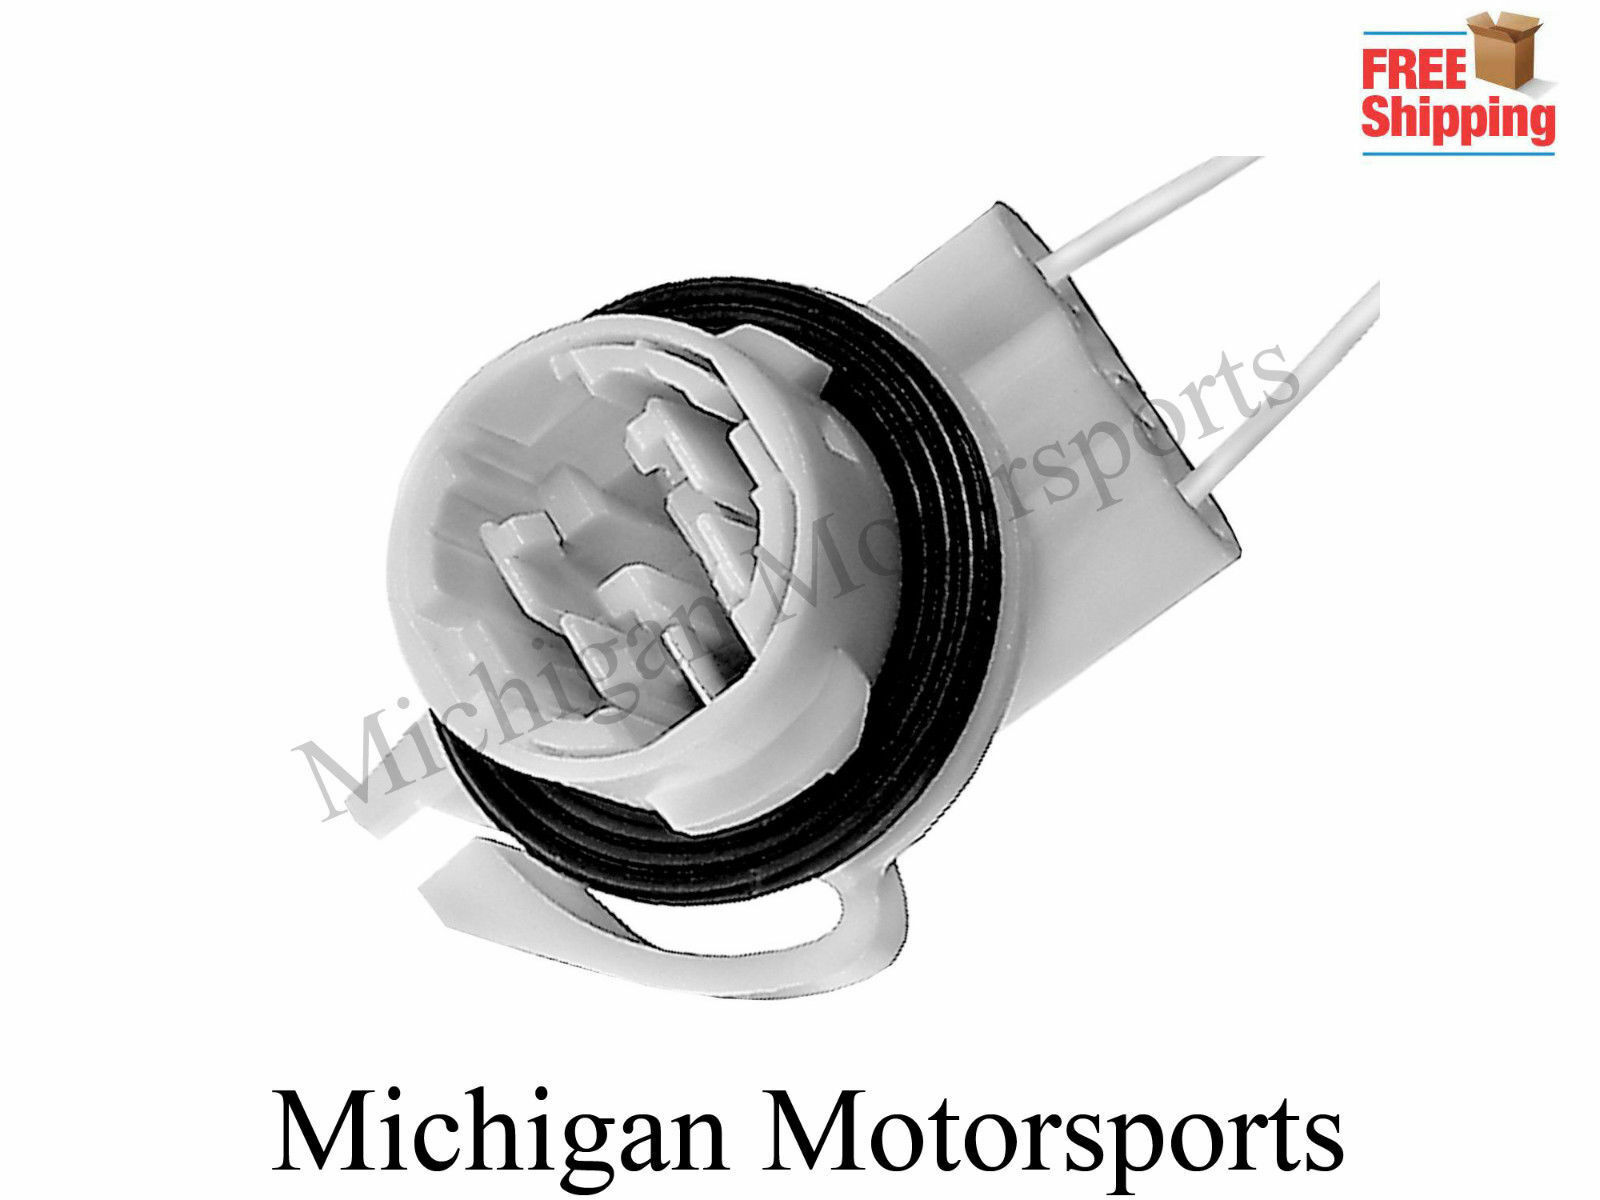 3157 socket lighting lamps gm 2 wire harness for 4157 3157 bulbs tail socket replacement for ls94